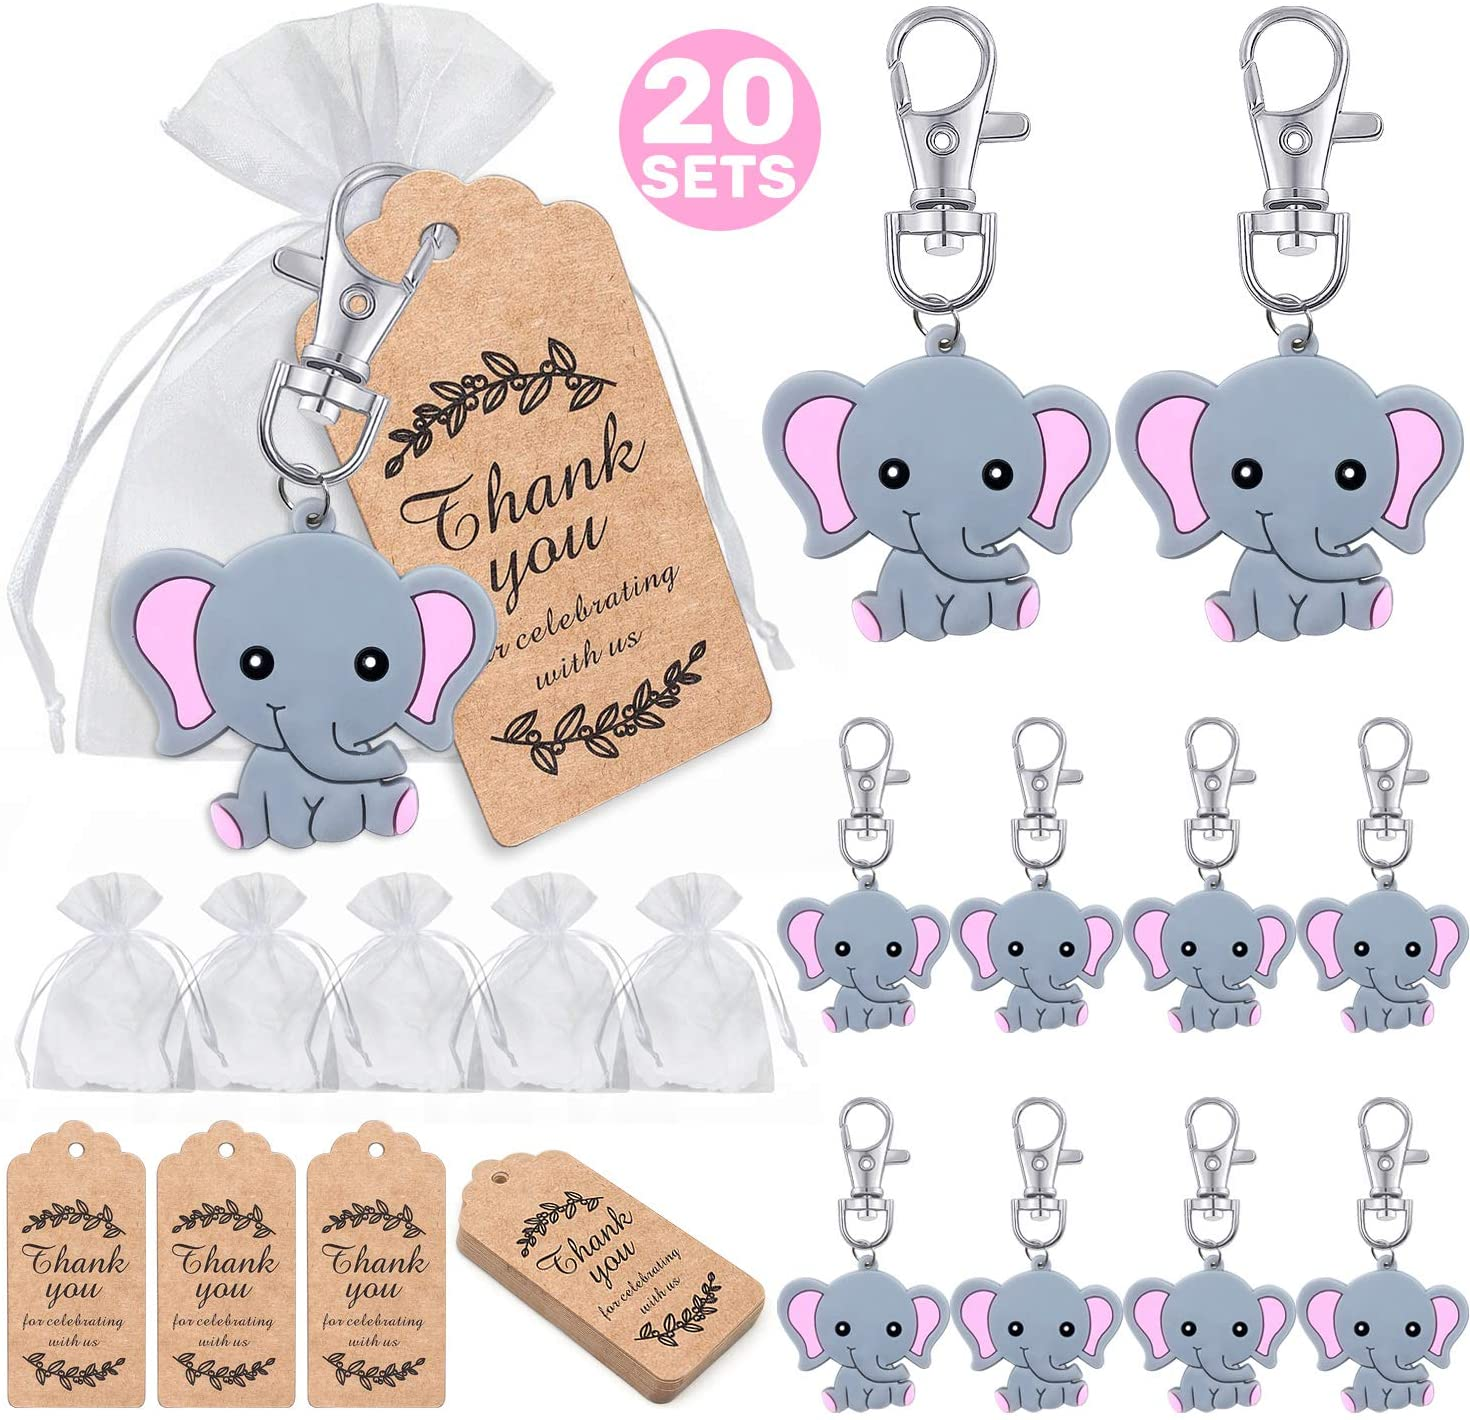 MOVINPE 20 Sets Baby Shower Return Gifts for Guests, Pink Baby Elephant Keychains + Organza Bags + Thank You Kraft Tags for Elephant Theme Party Favors, Girls Kids Birthday Party Supplies